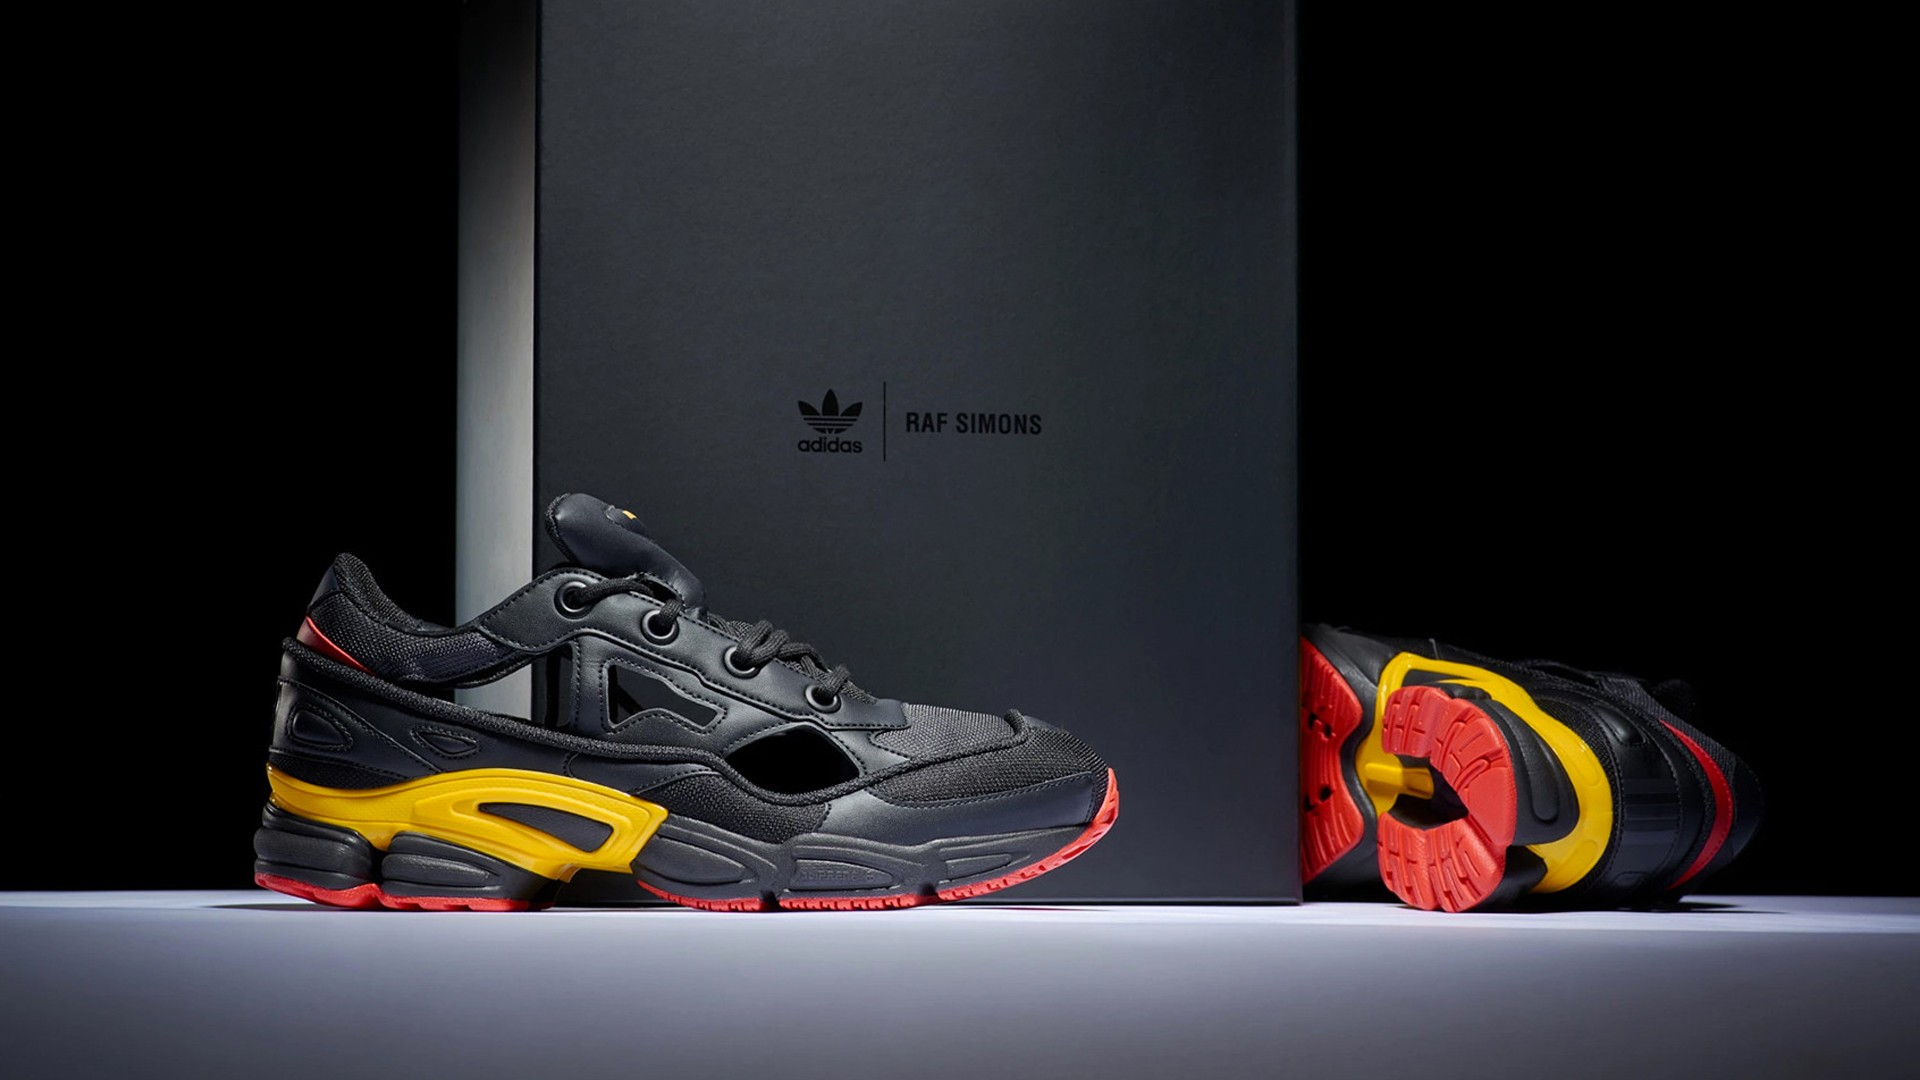 new products 0293f ef539 Raf Simons x adidas Ozweego Replicant Belgium Edition – Boys'Co